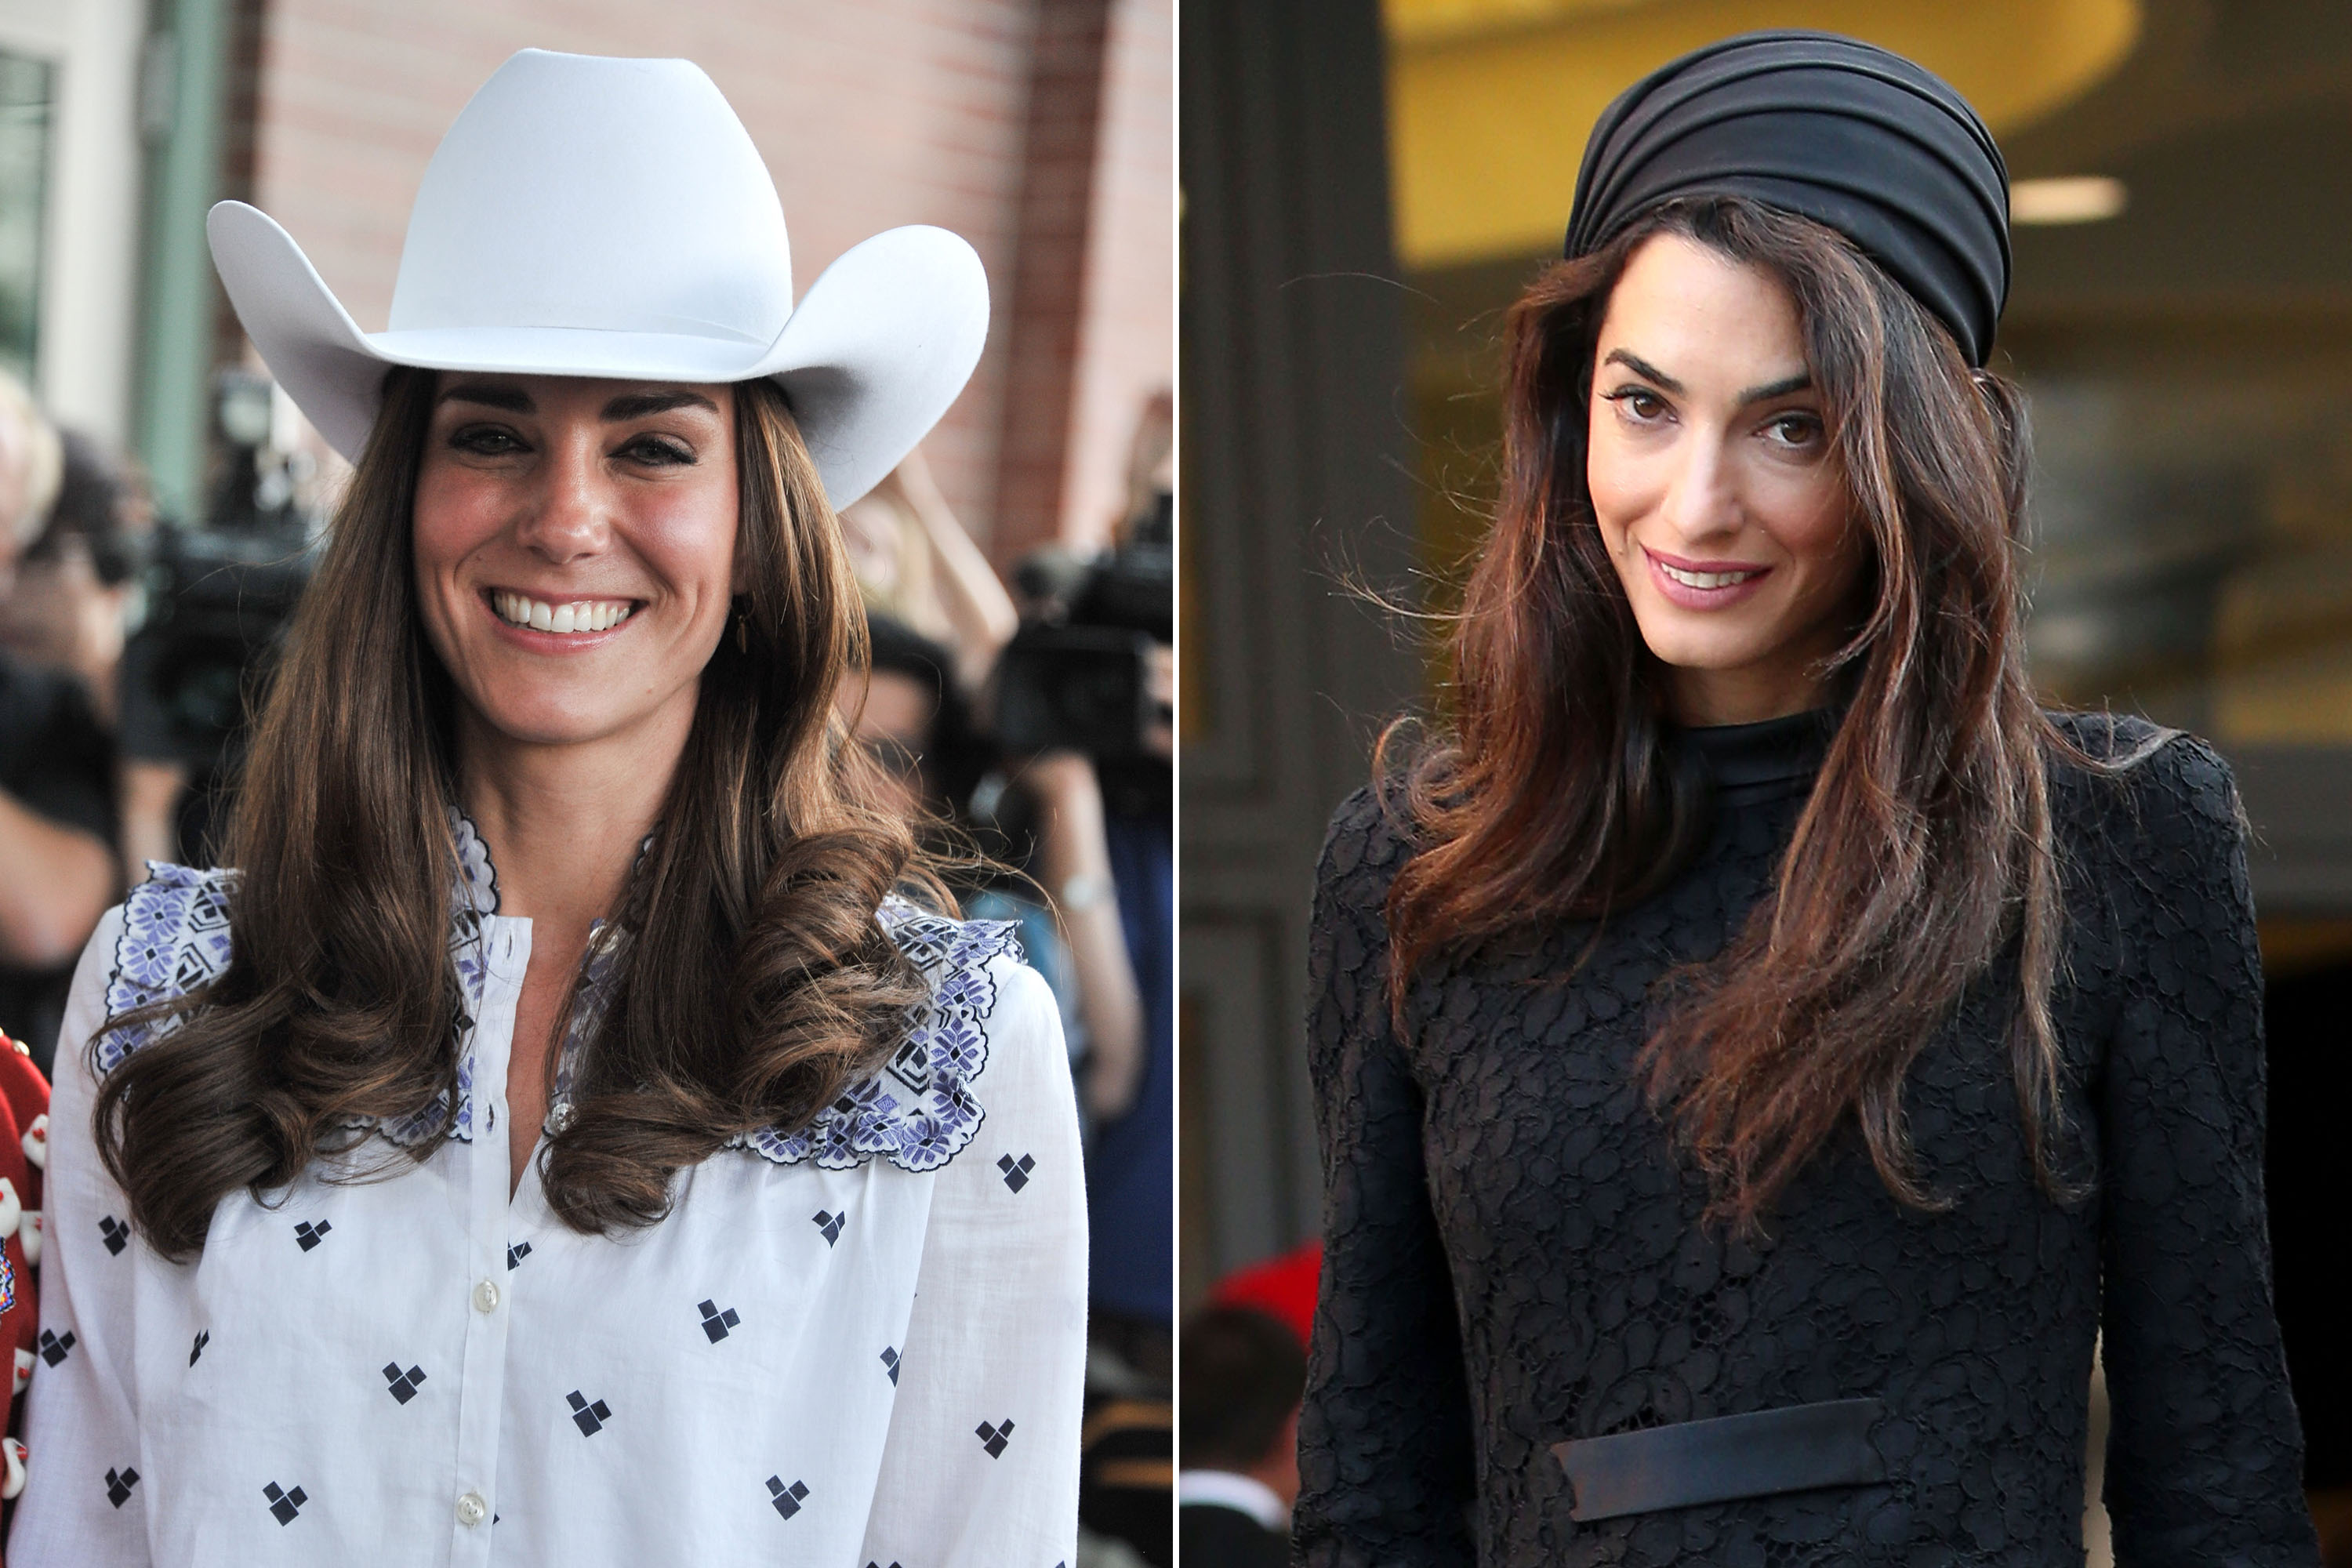 Kate Middleton Vs Amal Clooney Whose Hats Are Better